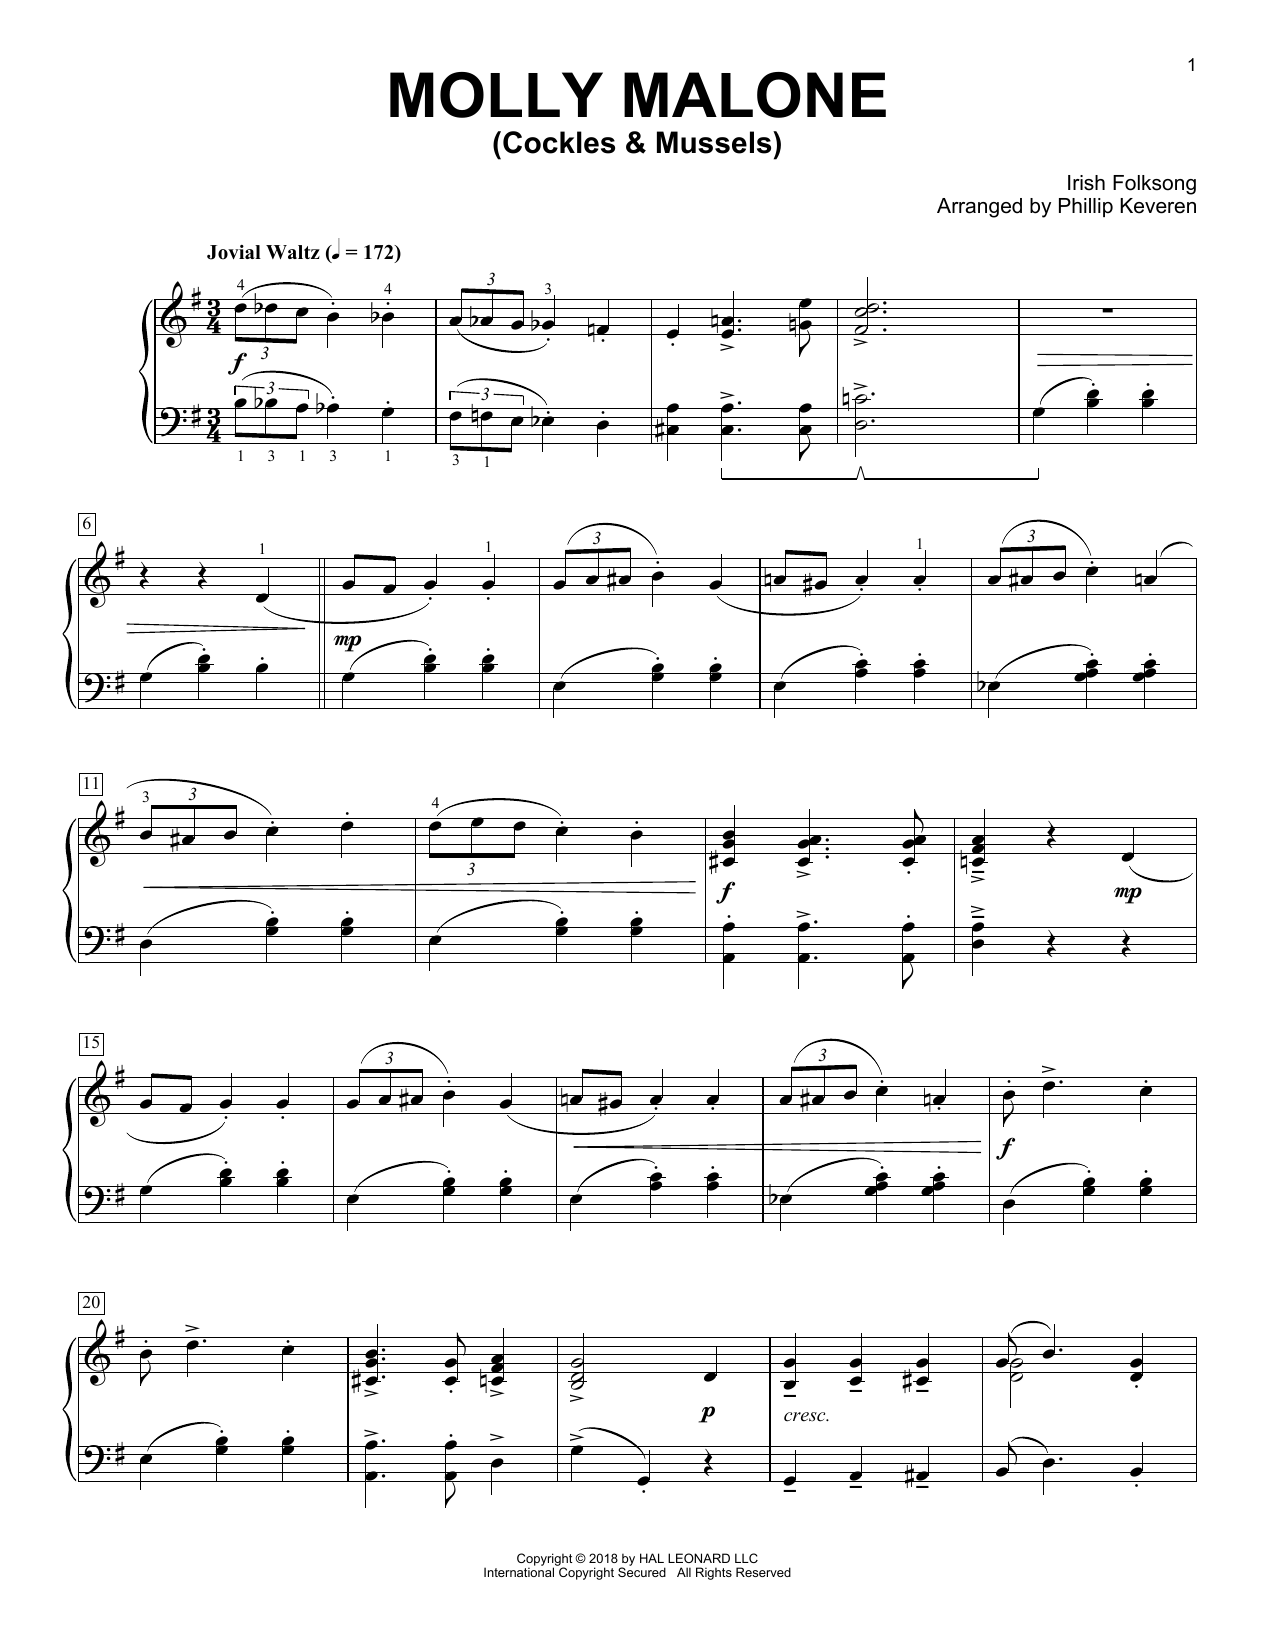 Irish Folksong Molly Malone (Cockles & Mussels) (arr. Phillip Keveren) sheet music notes and chords